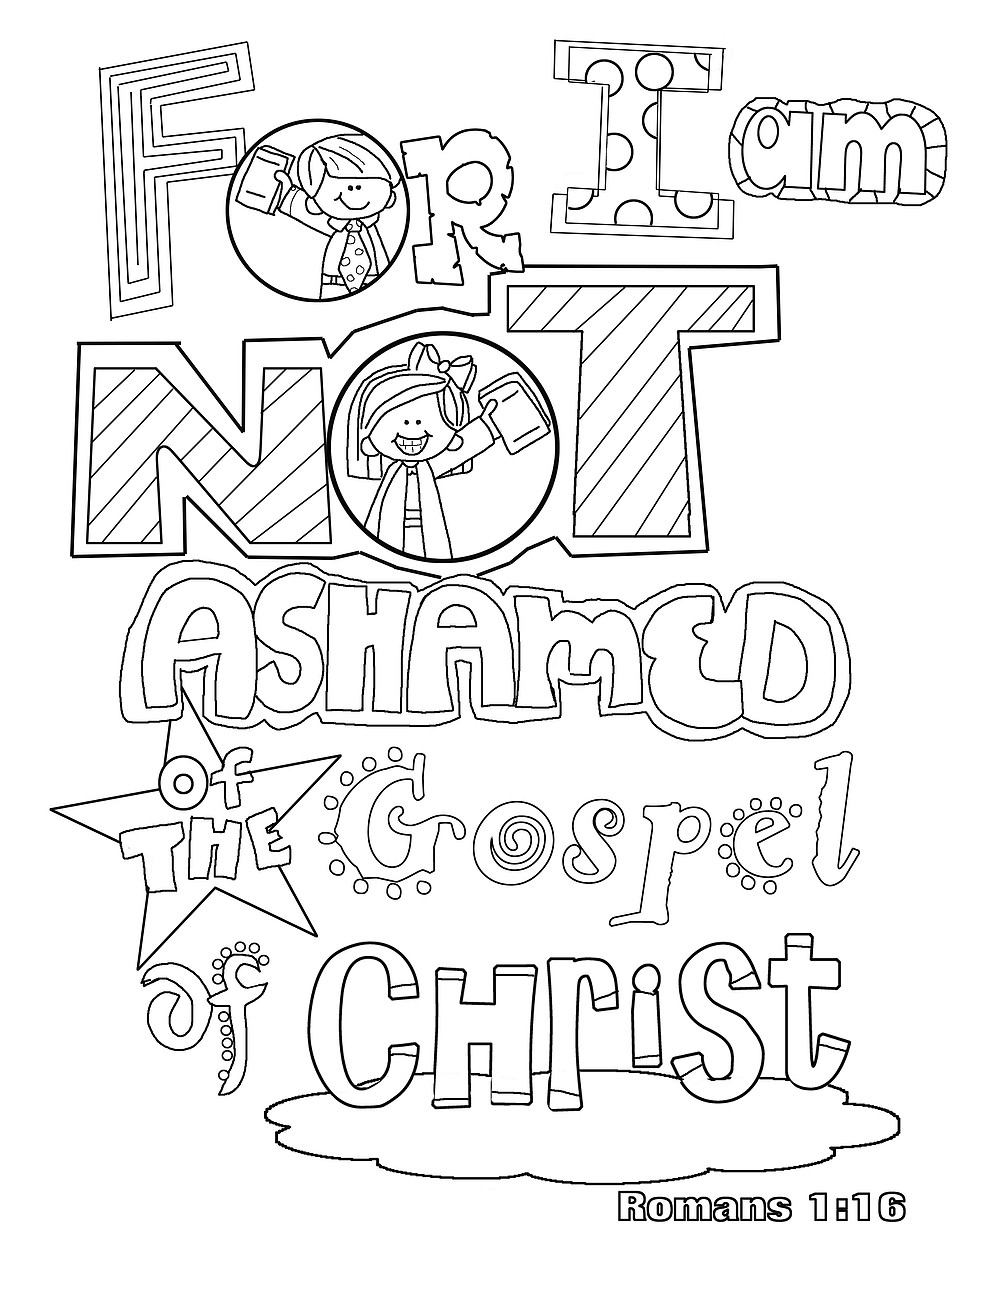 gods power coloring page be strong in the lord coloring page see more at my blog page power coloring gods